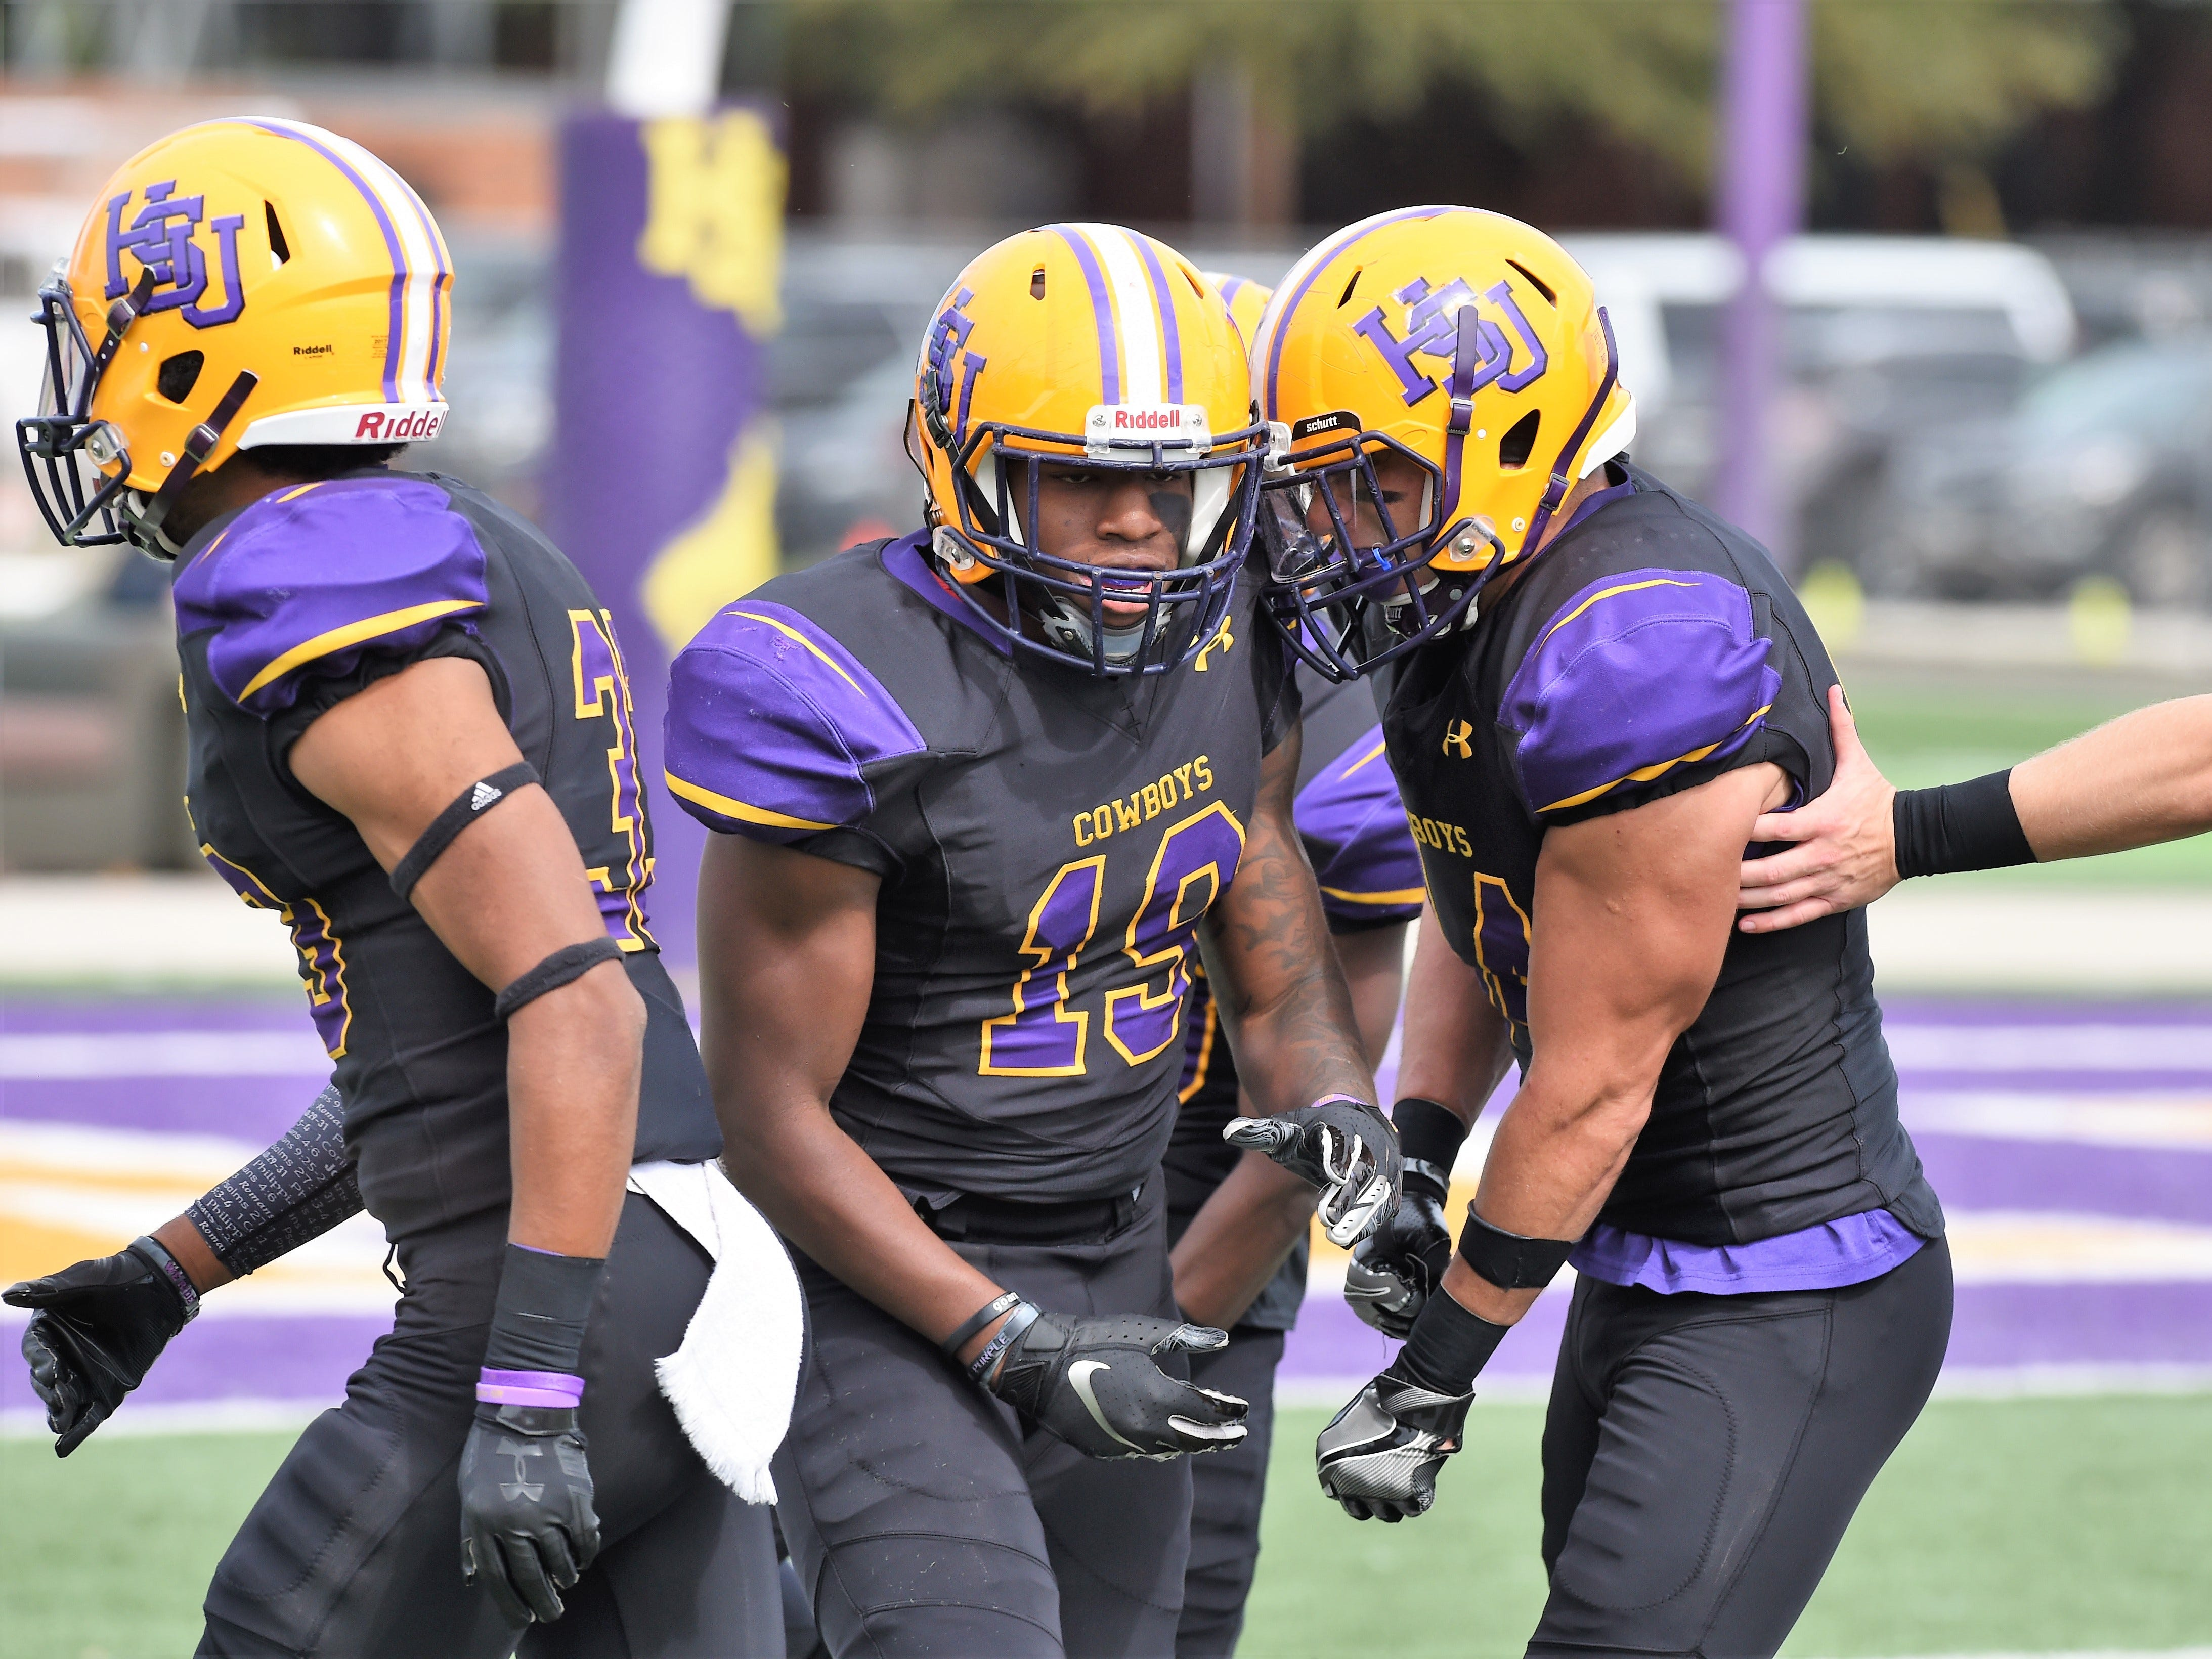 Geography, money set up rematch for Hardin-Simmons and Mary Hardin-Baylor in first round